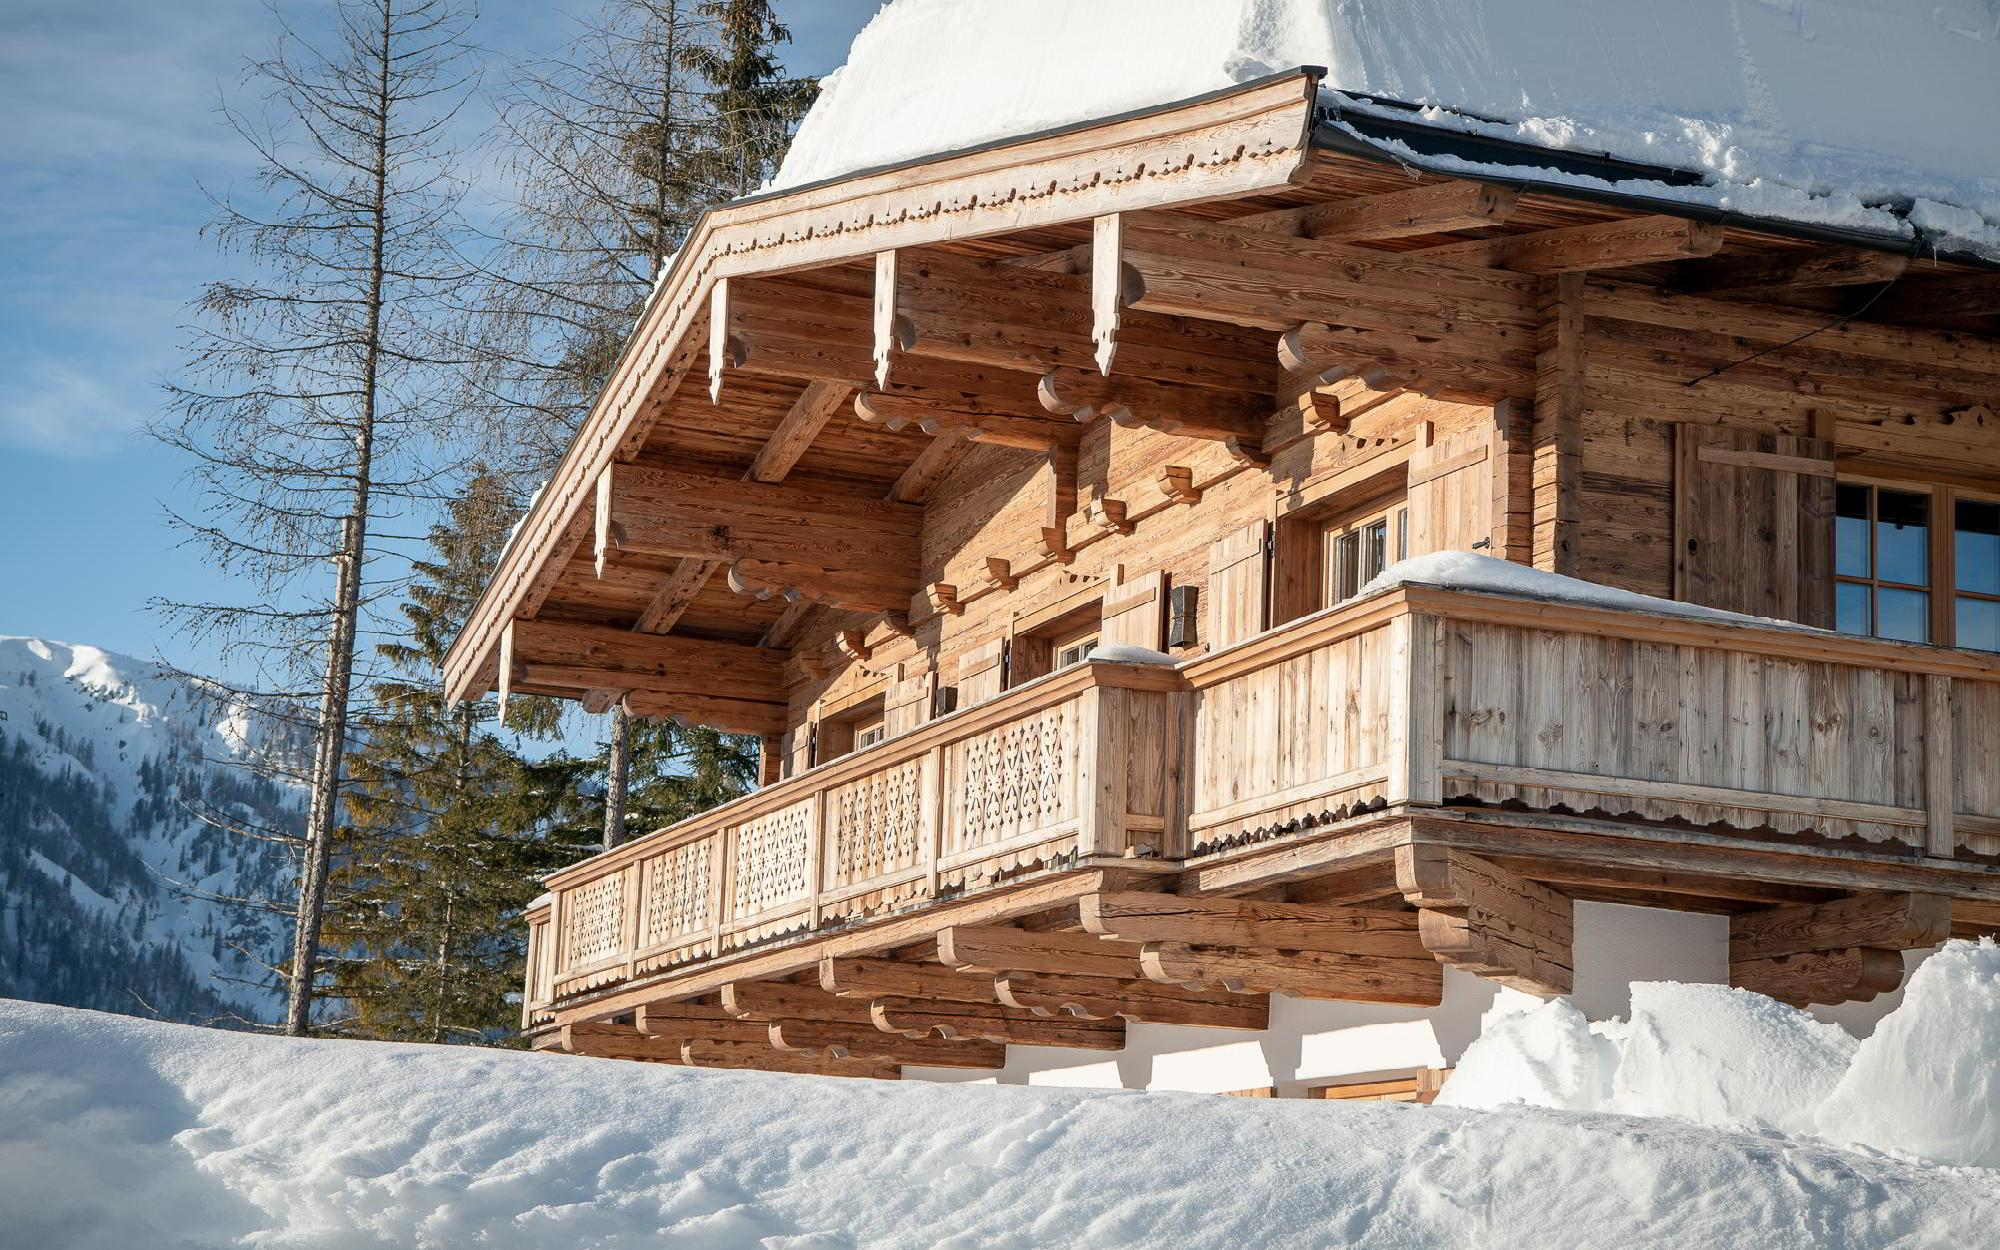 High-quality Tyrolean chalet with secondary dedication For Sale - Austria - Tirol